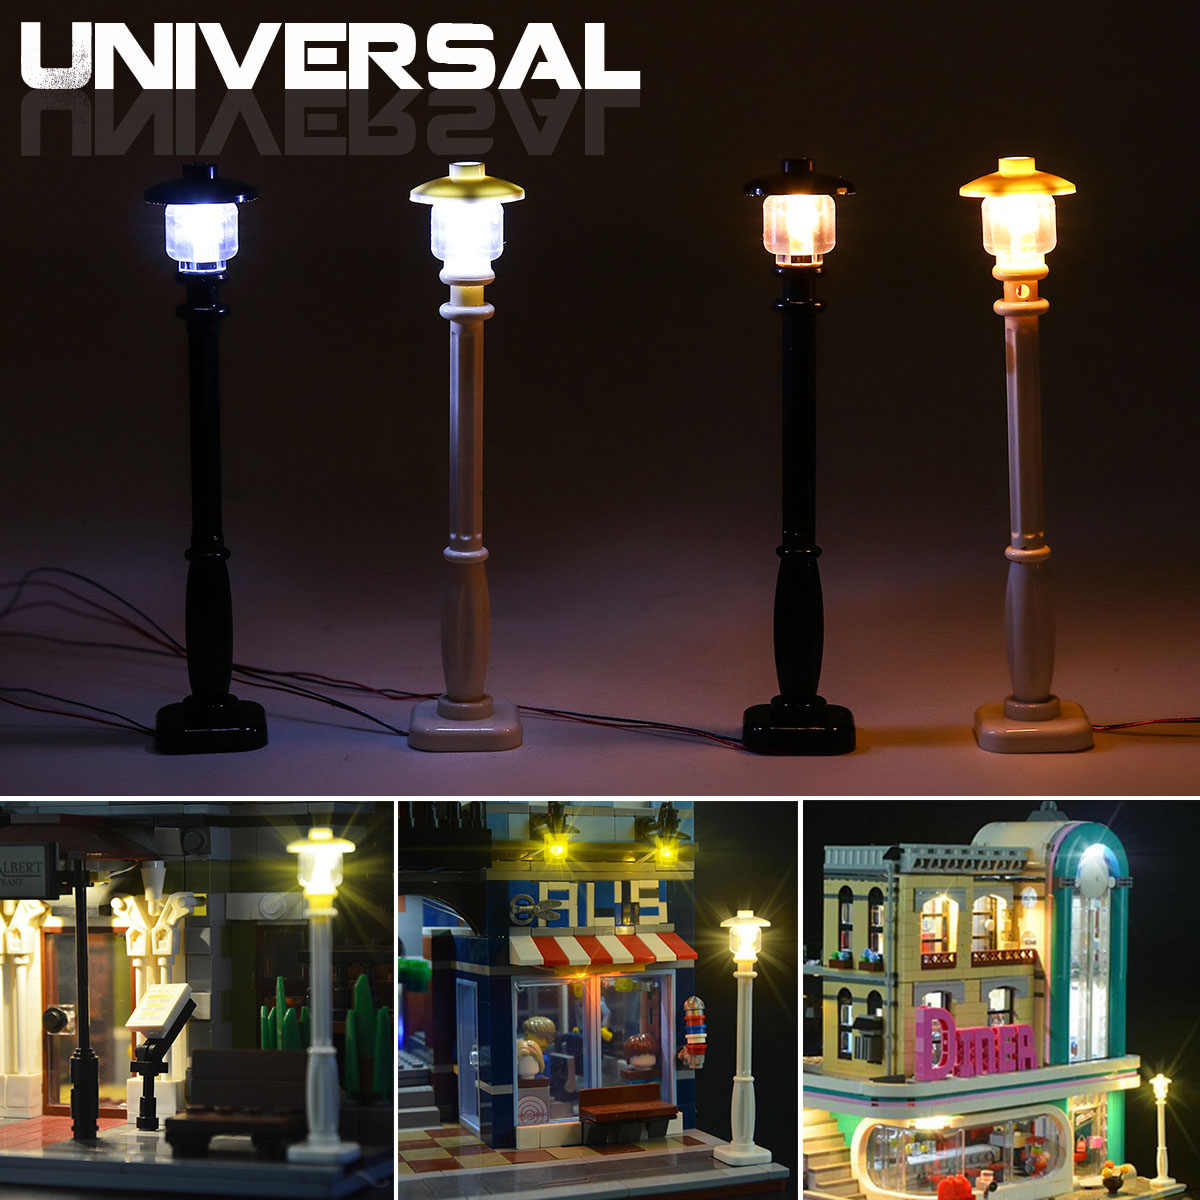 DIY LED Light Lamp Post Lantern for Lego for Street Building Shop Model Building Toy Bricks (Model Not Included) Universal